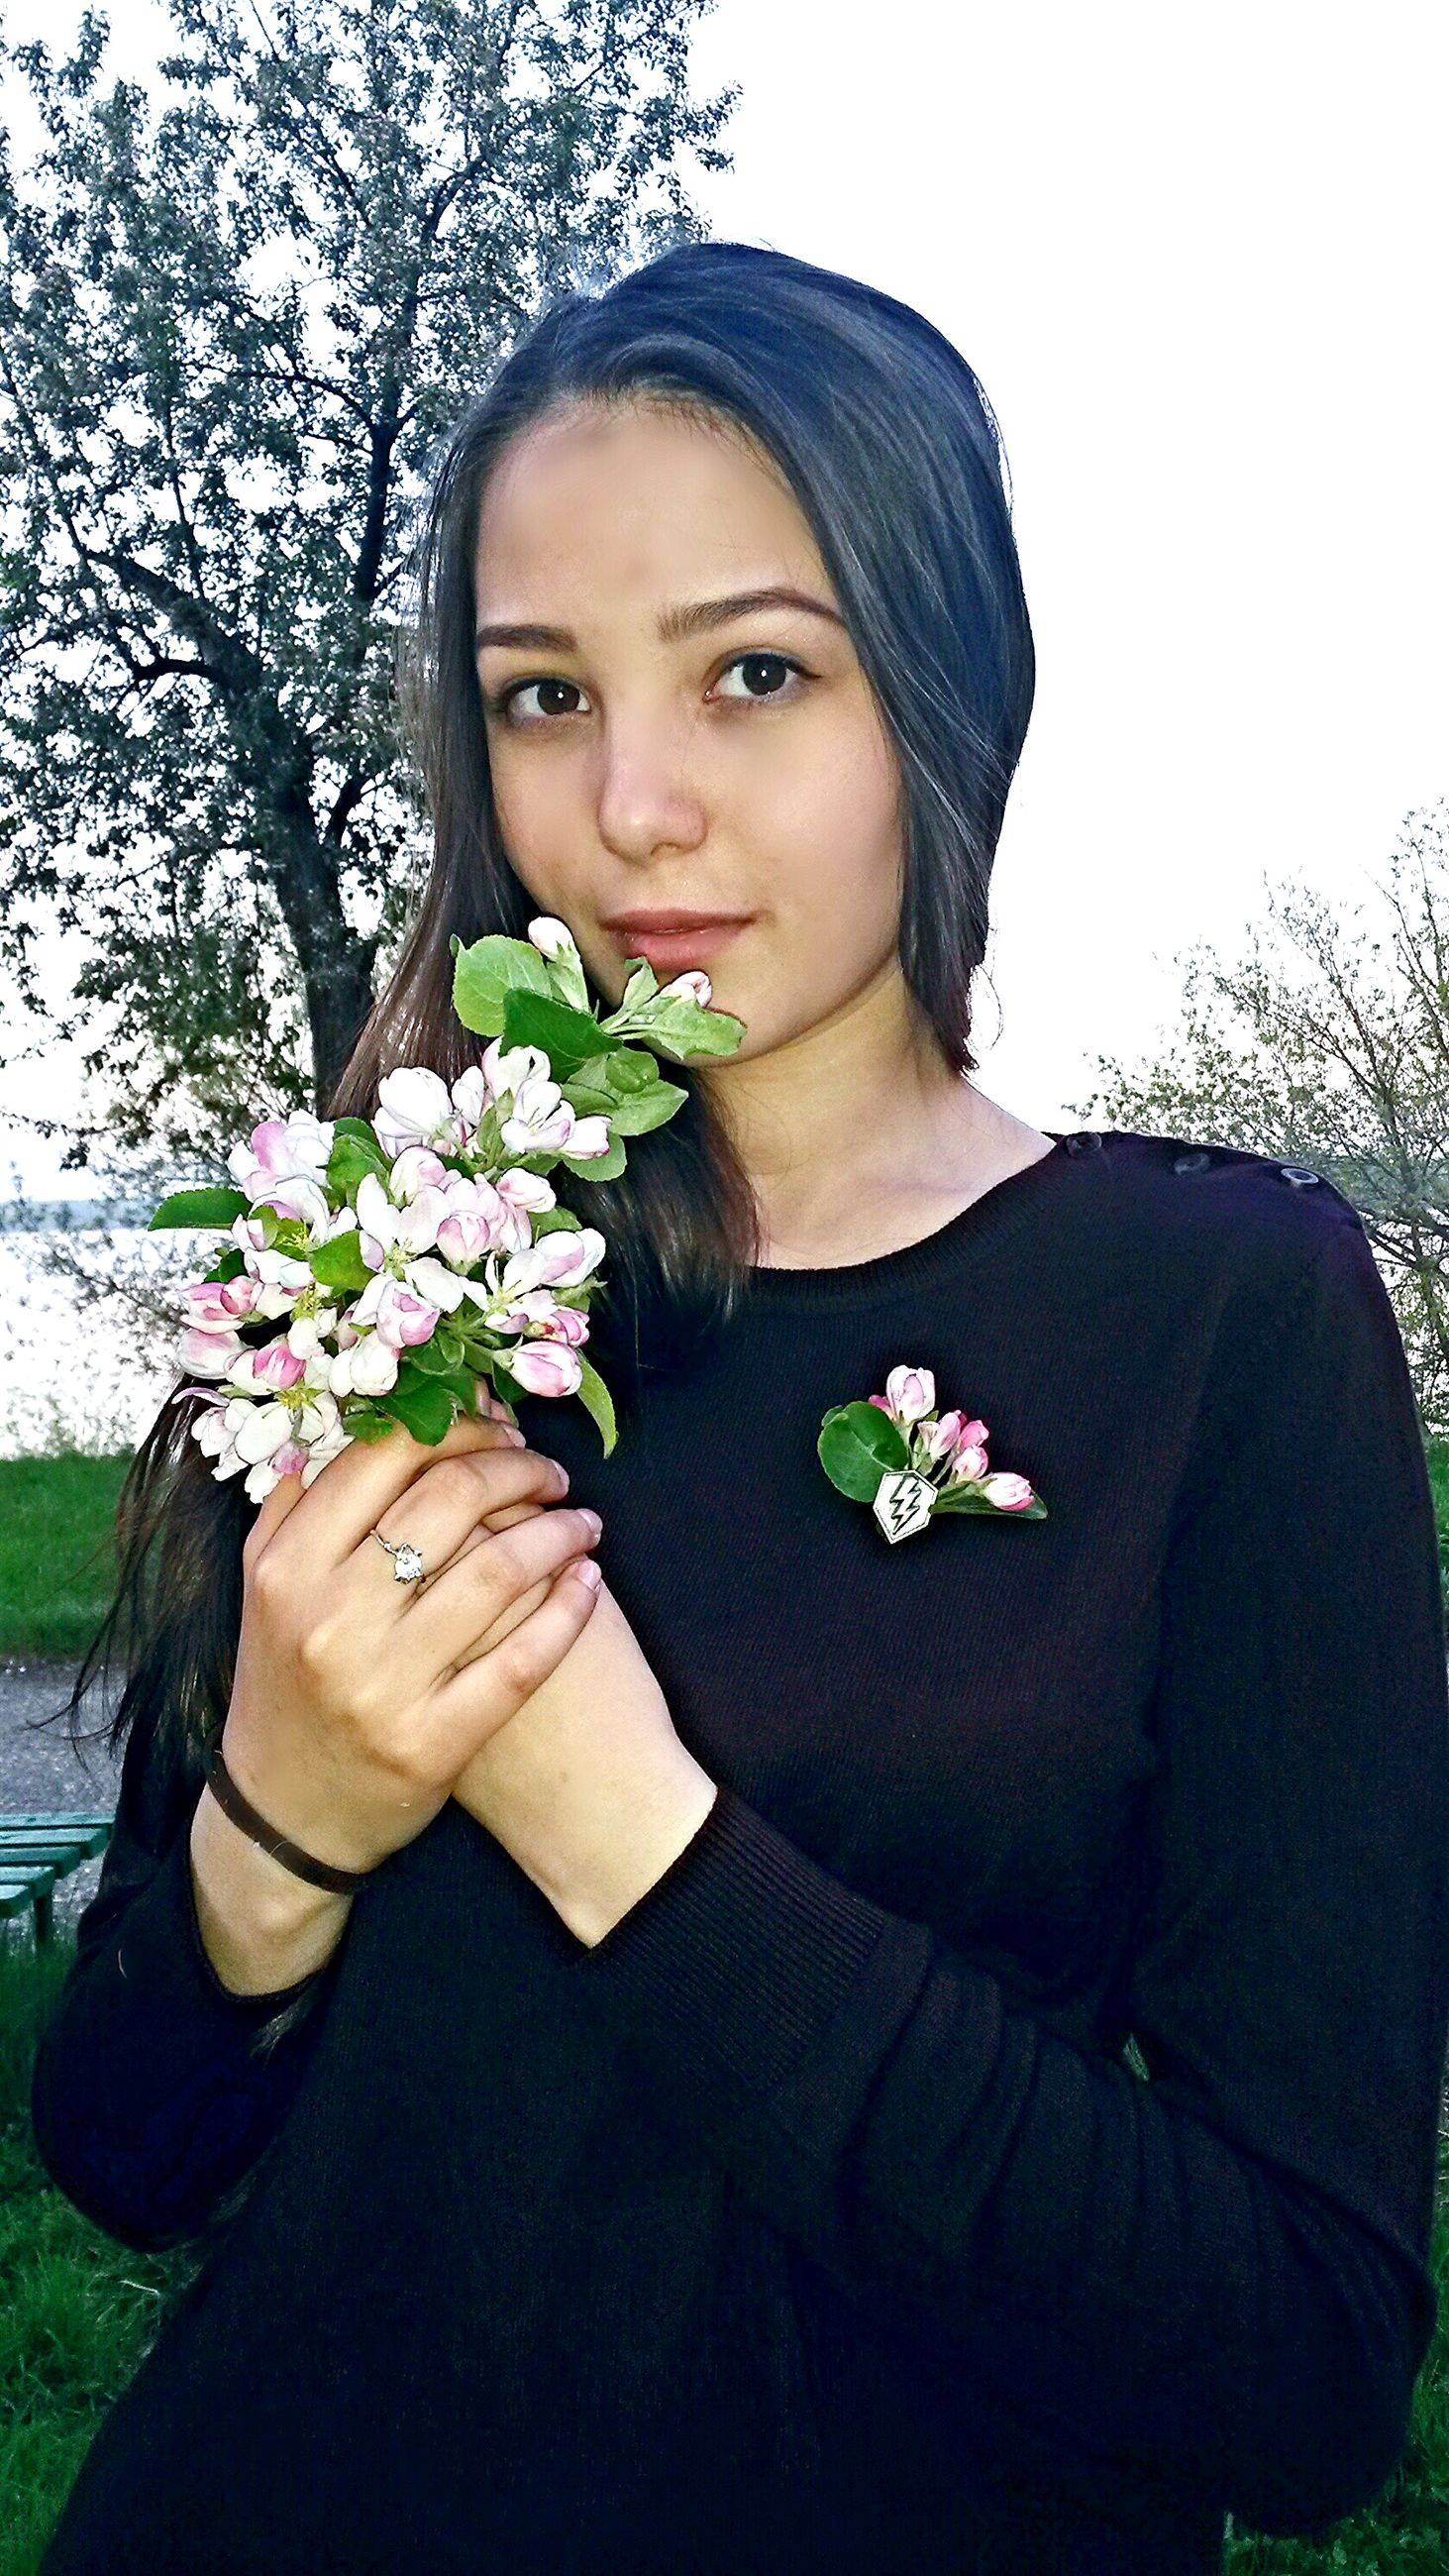 flower, young adult, young women, bouquet, nature, one person, beautiful woman, front view, plant, growth, real people, beauty in nature, outdoors, lifestyles, looking at camera, holding, rose - flower, portrait, leaf, fragility, day, freshness, beauty, flower head, tree, close-up, people